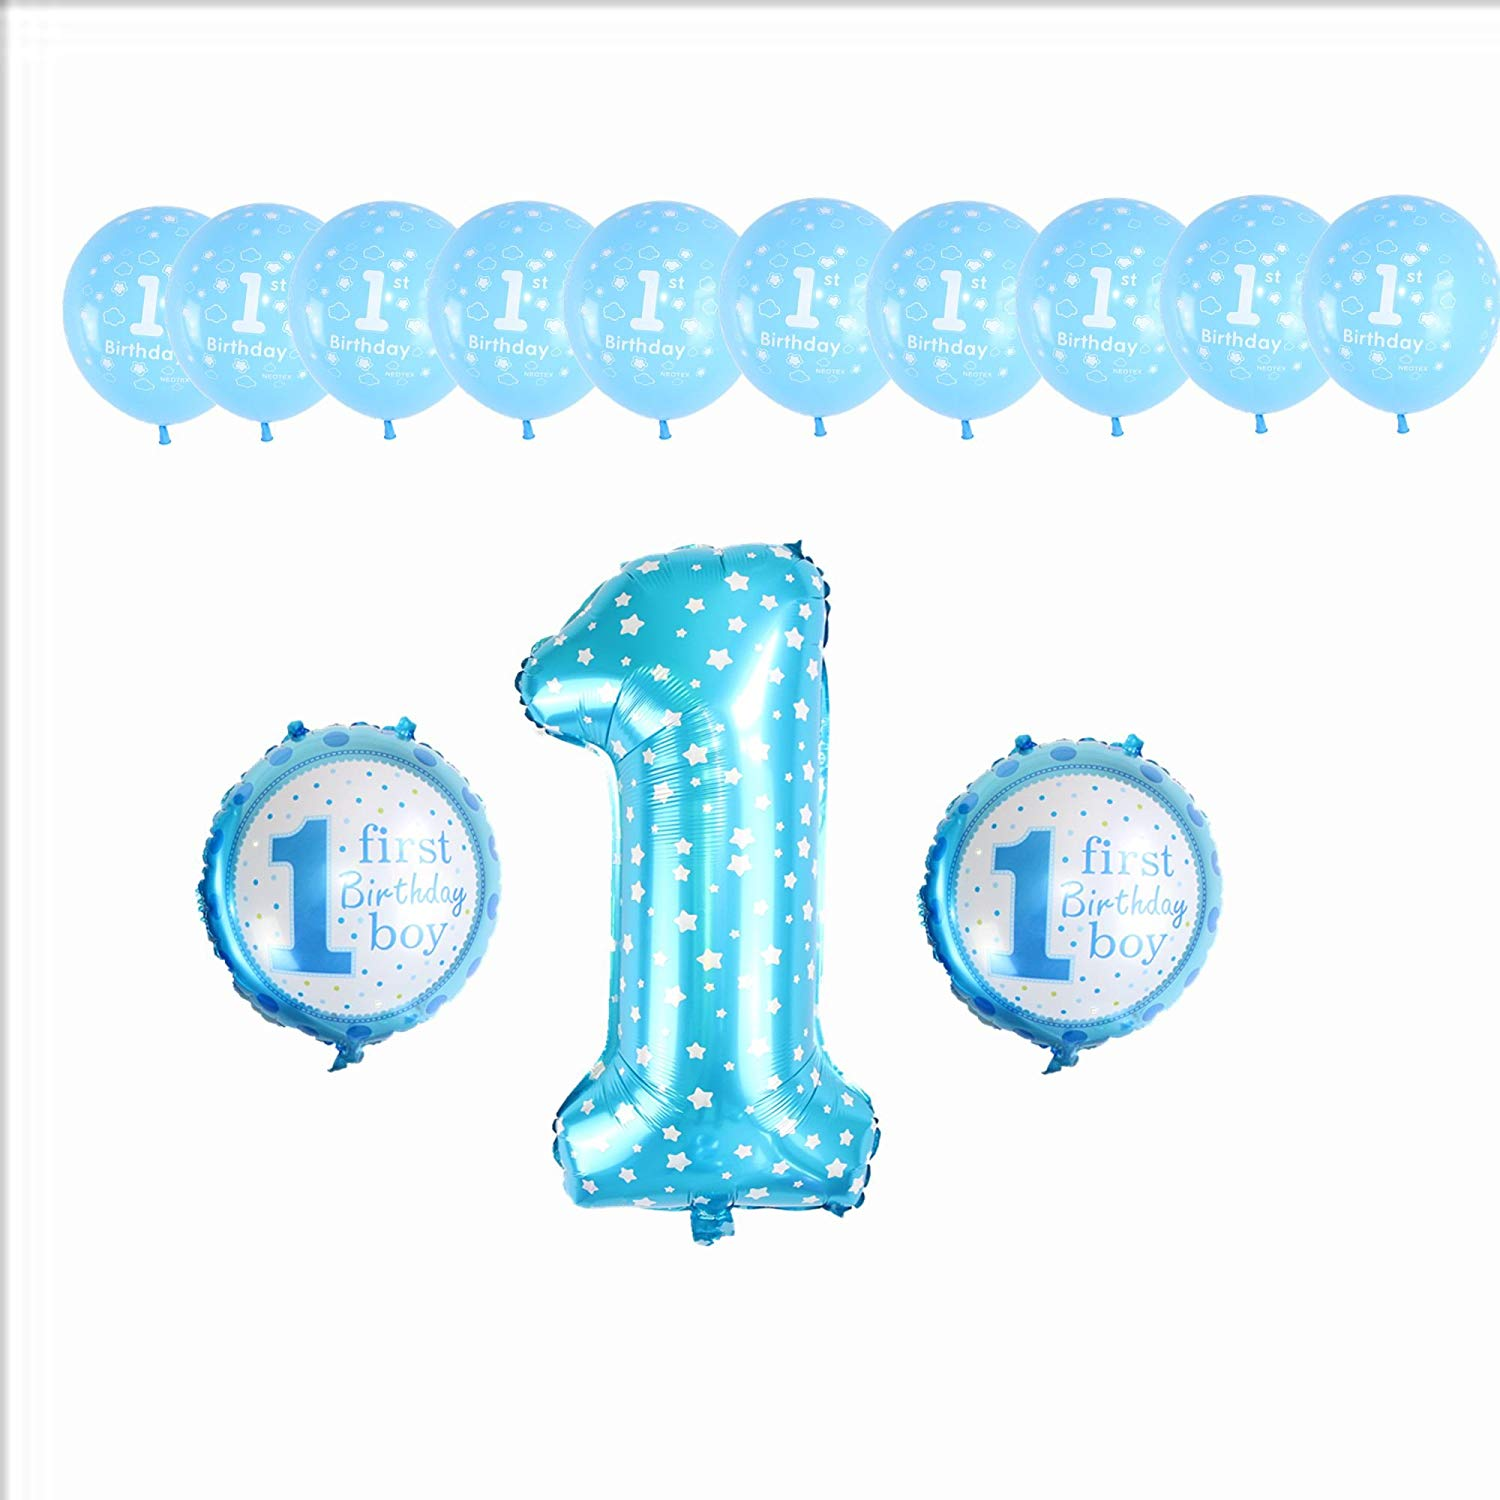 1 Year Old Birthday Party Decorations Baby Boy Girl Pink Blue Latex Foil Balloons 42inch